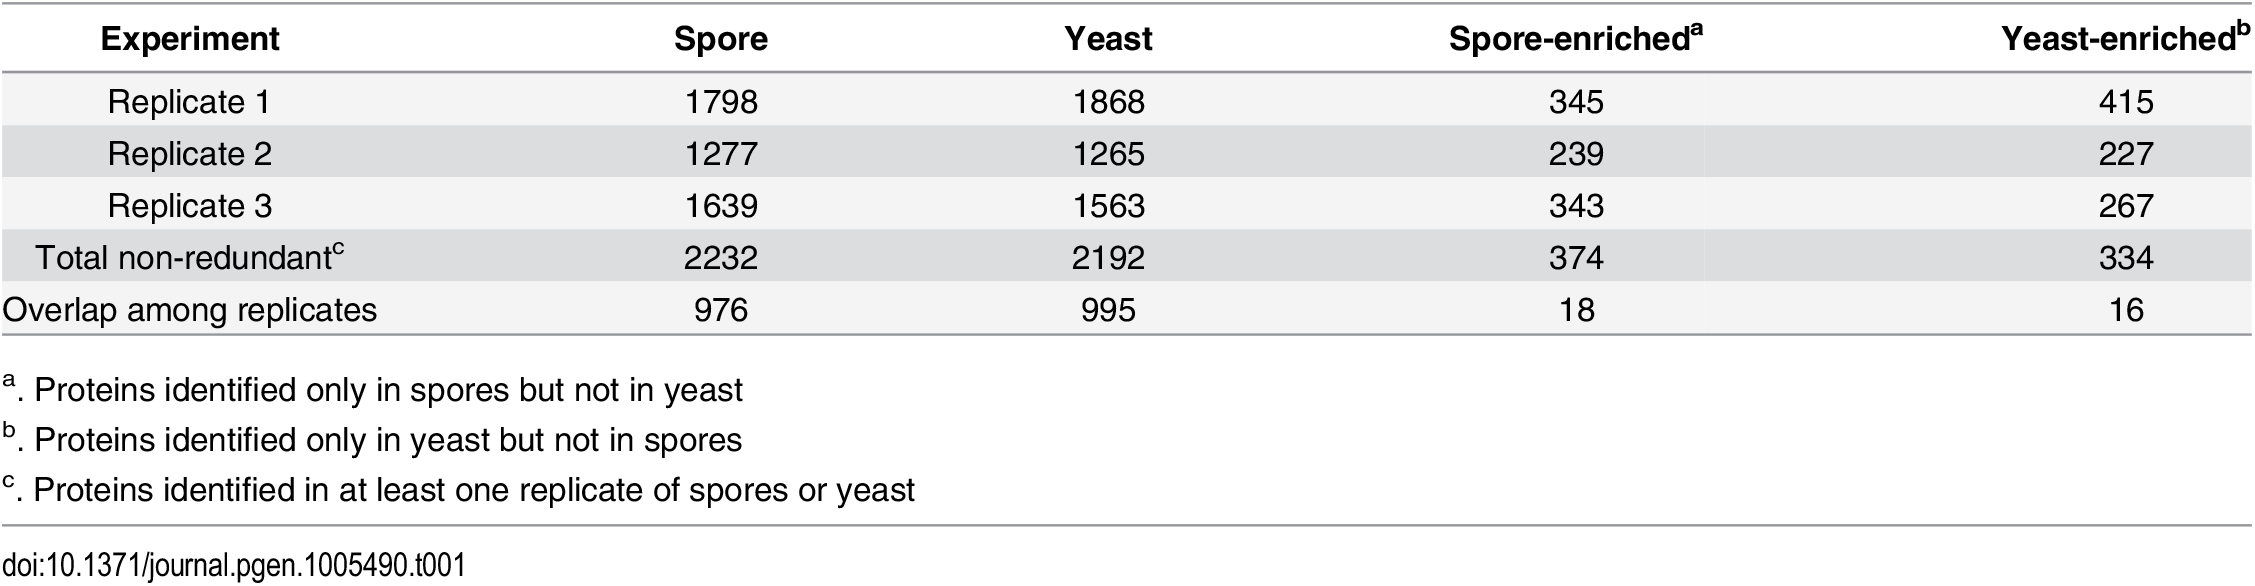 Number of proteins identified in spores and yeast.